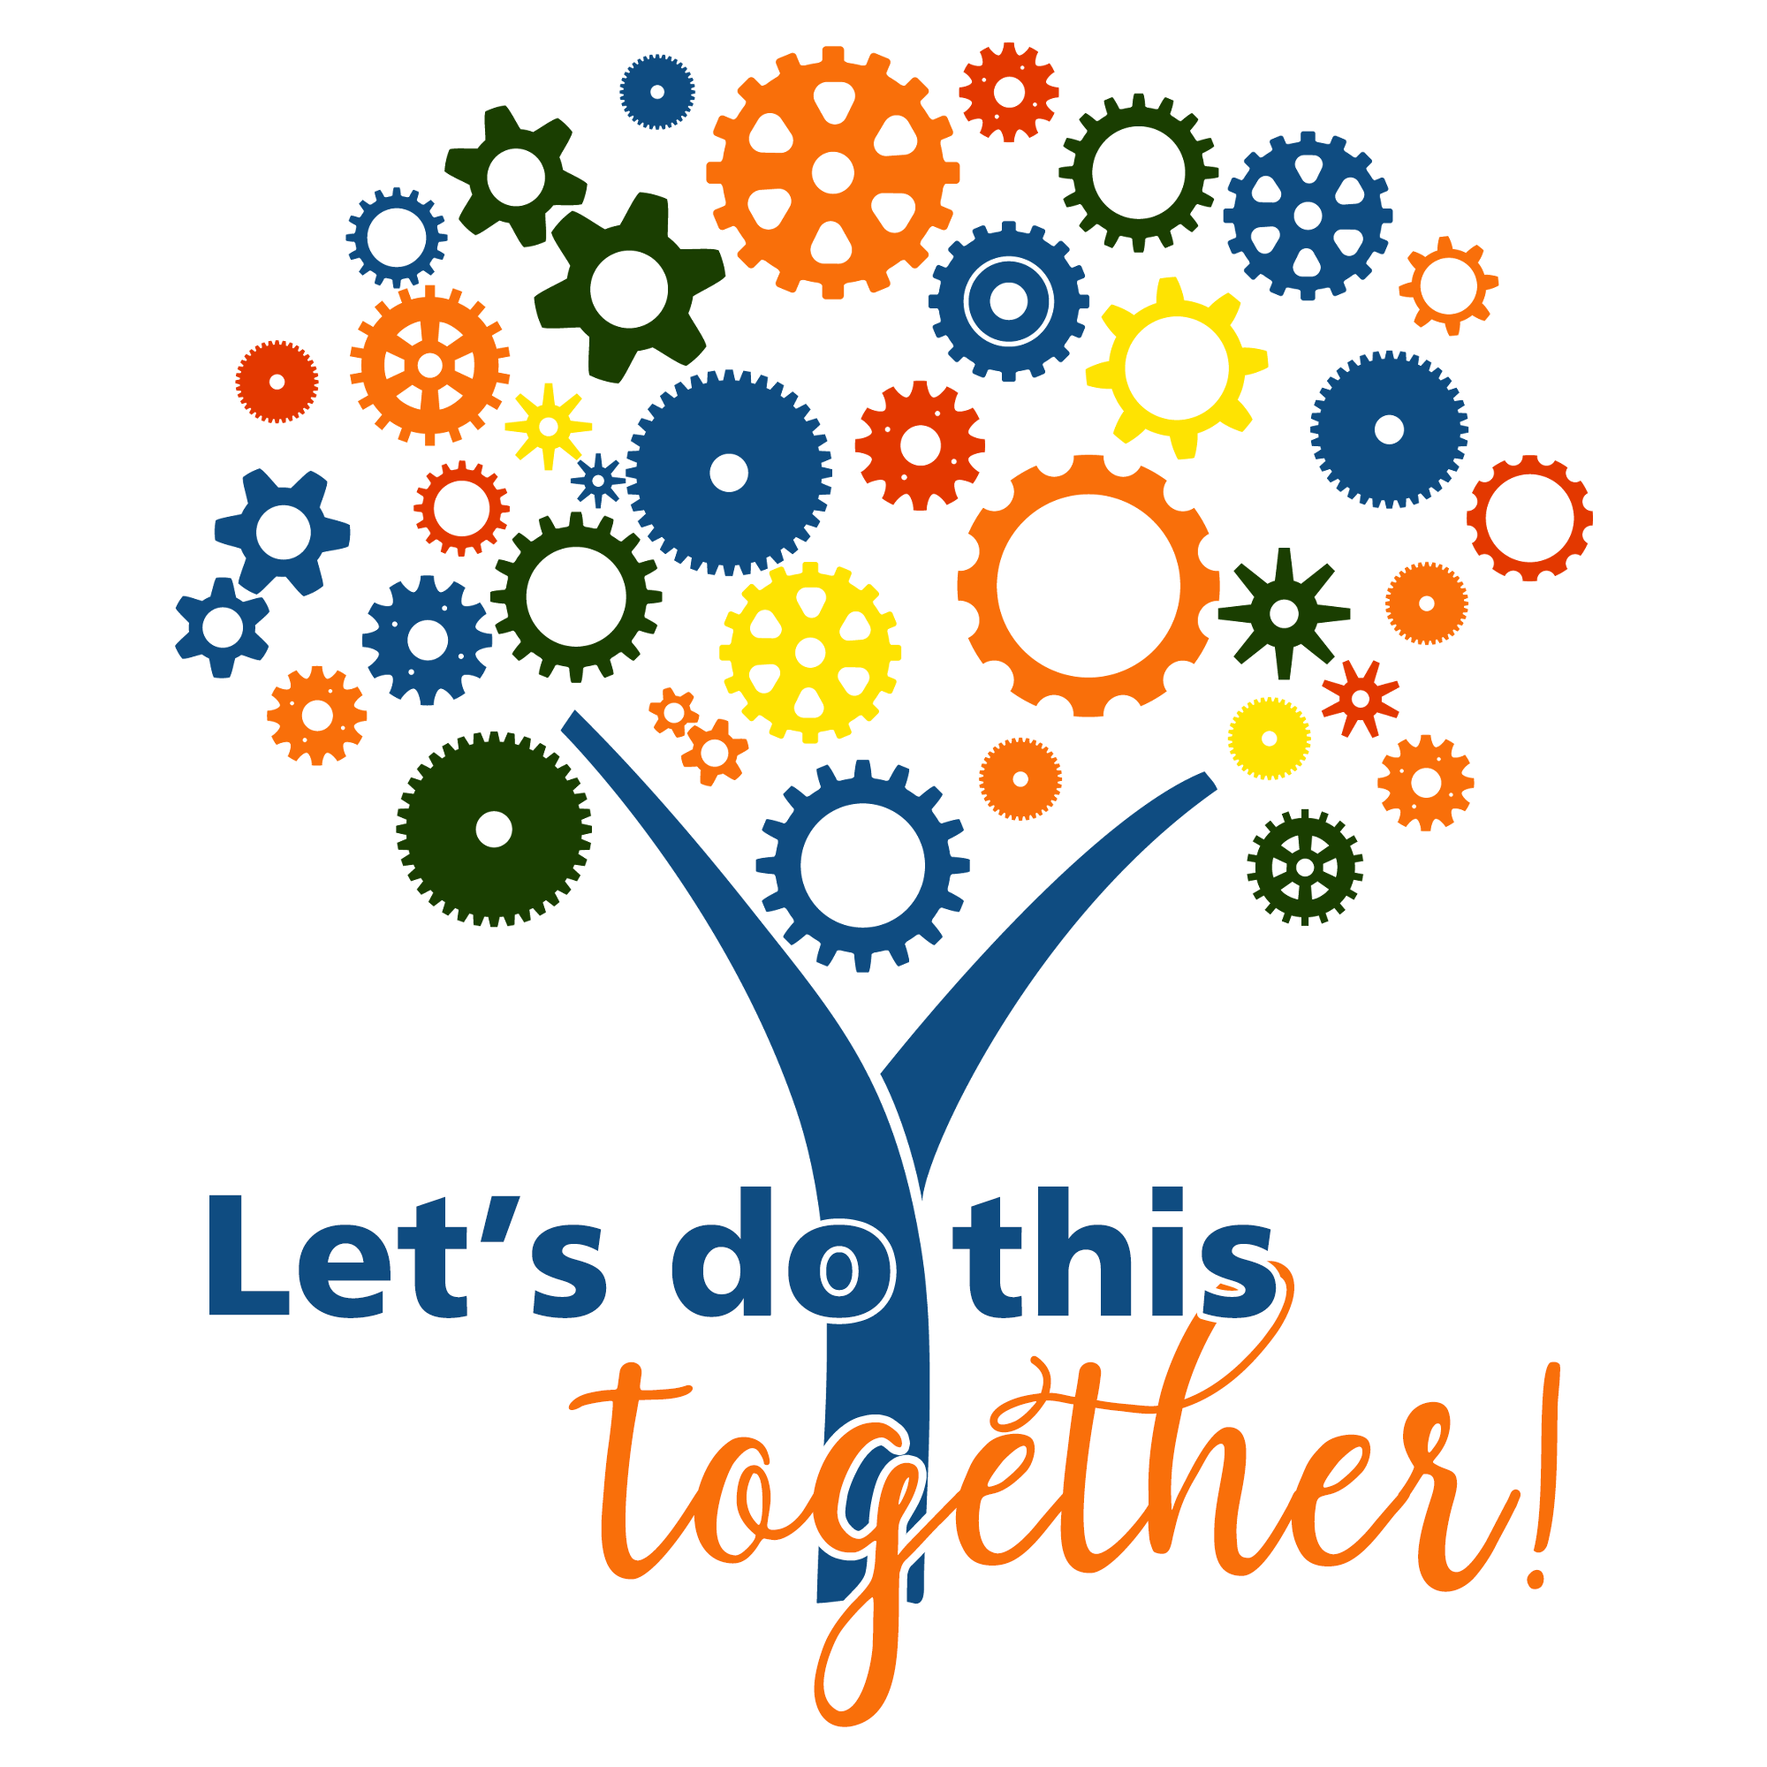 Let's do this TOGETHER! image